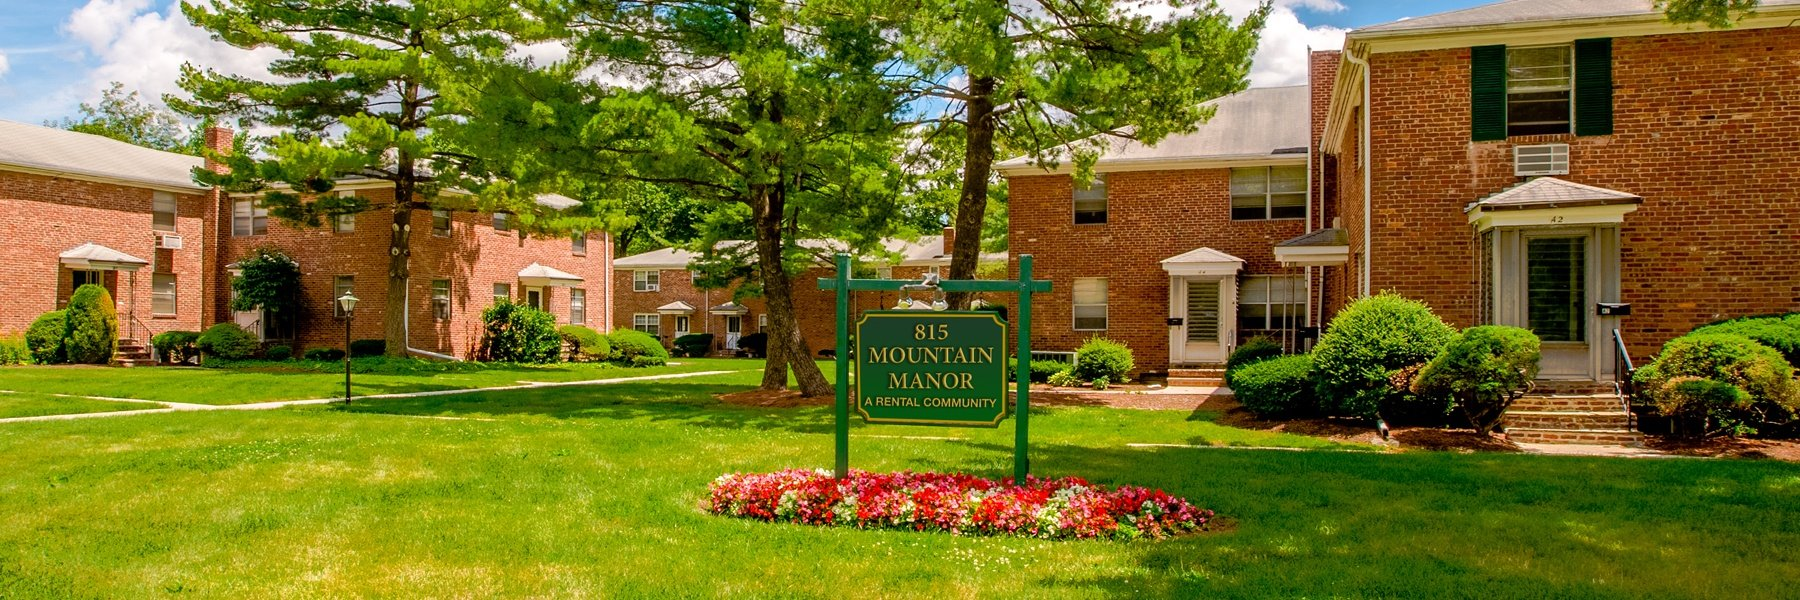 Mountain Manor Apartments For Rent in Springfield, NJ Welcome